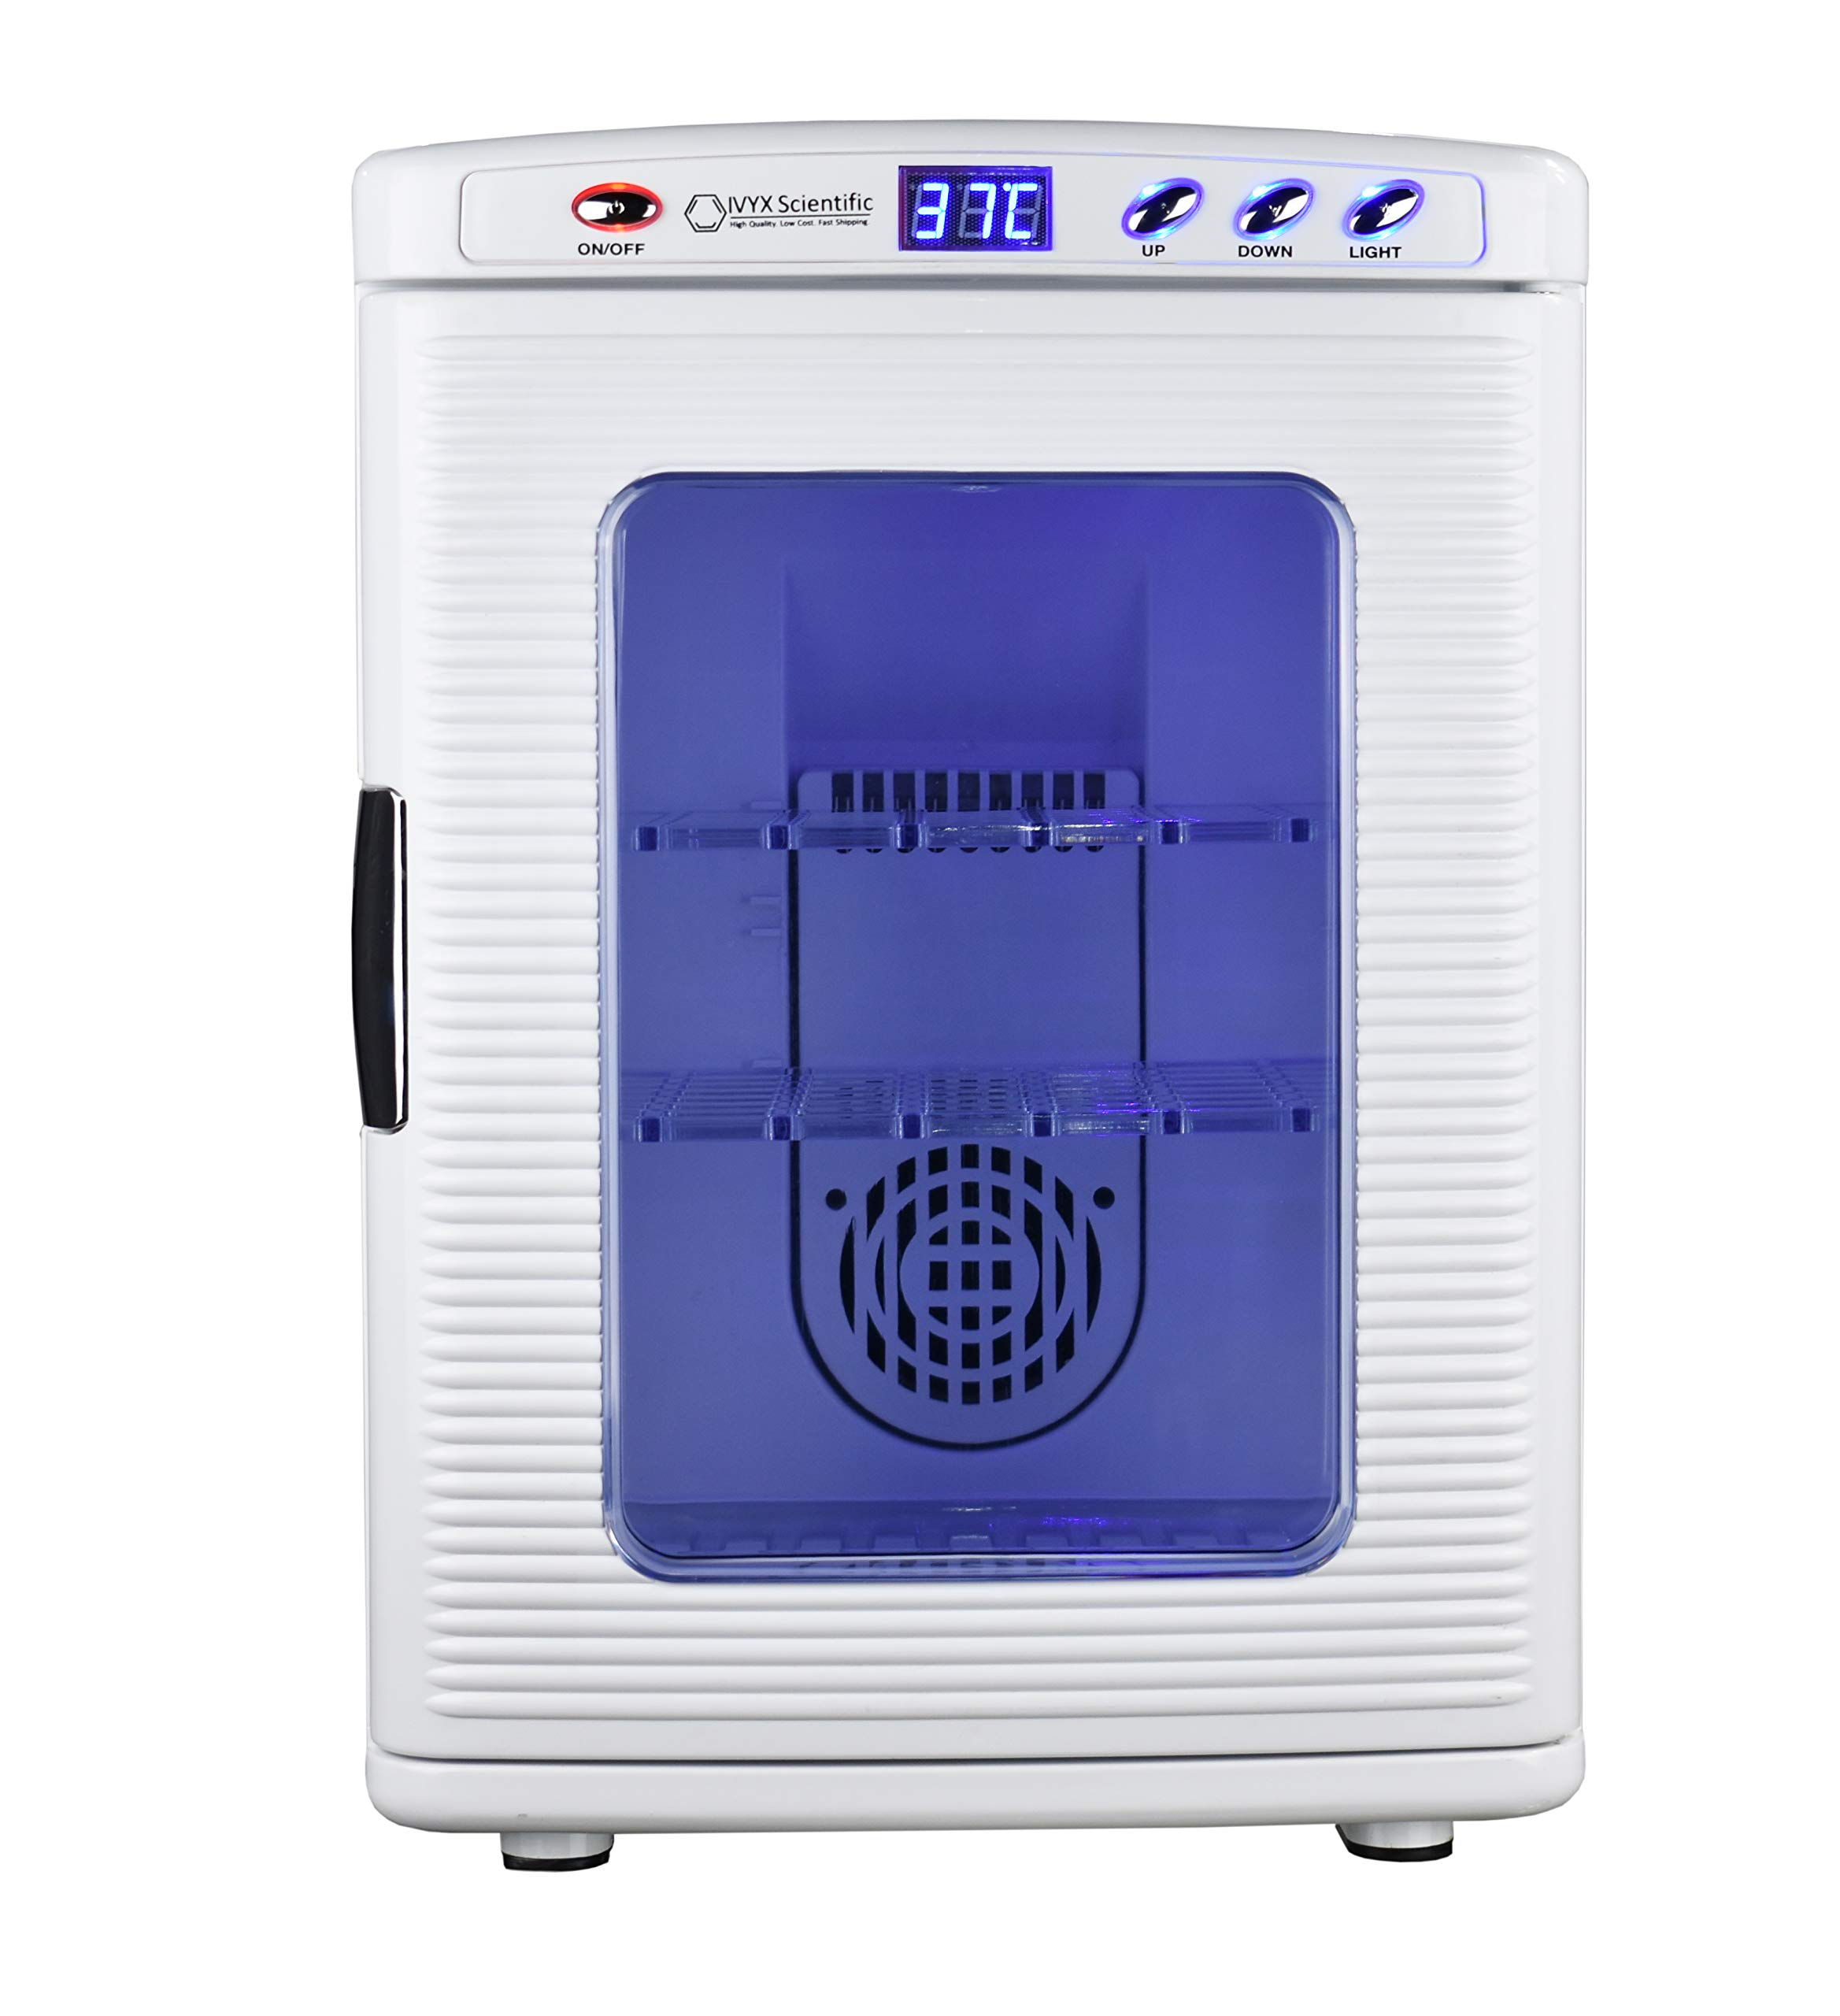 Lab Incubator, Cooling and Heating 2-60C, 12V/110V, 60W, 25L/0.88 cu. ft. Capacity by IVYX Scientific